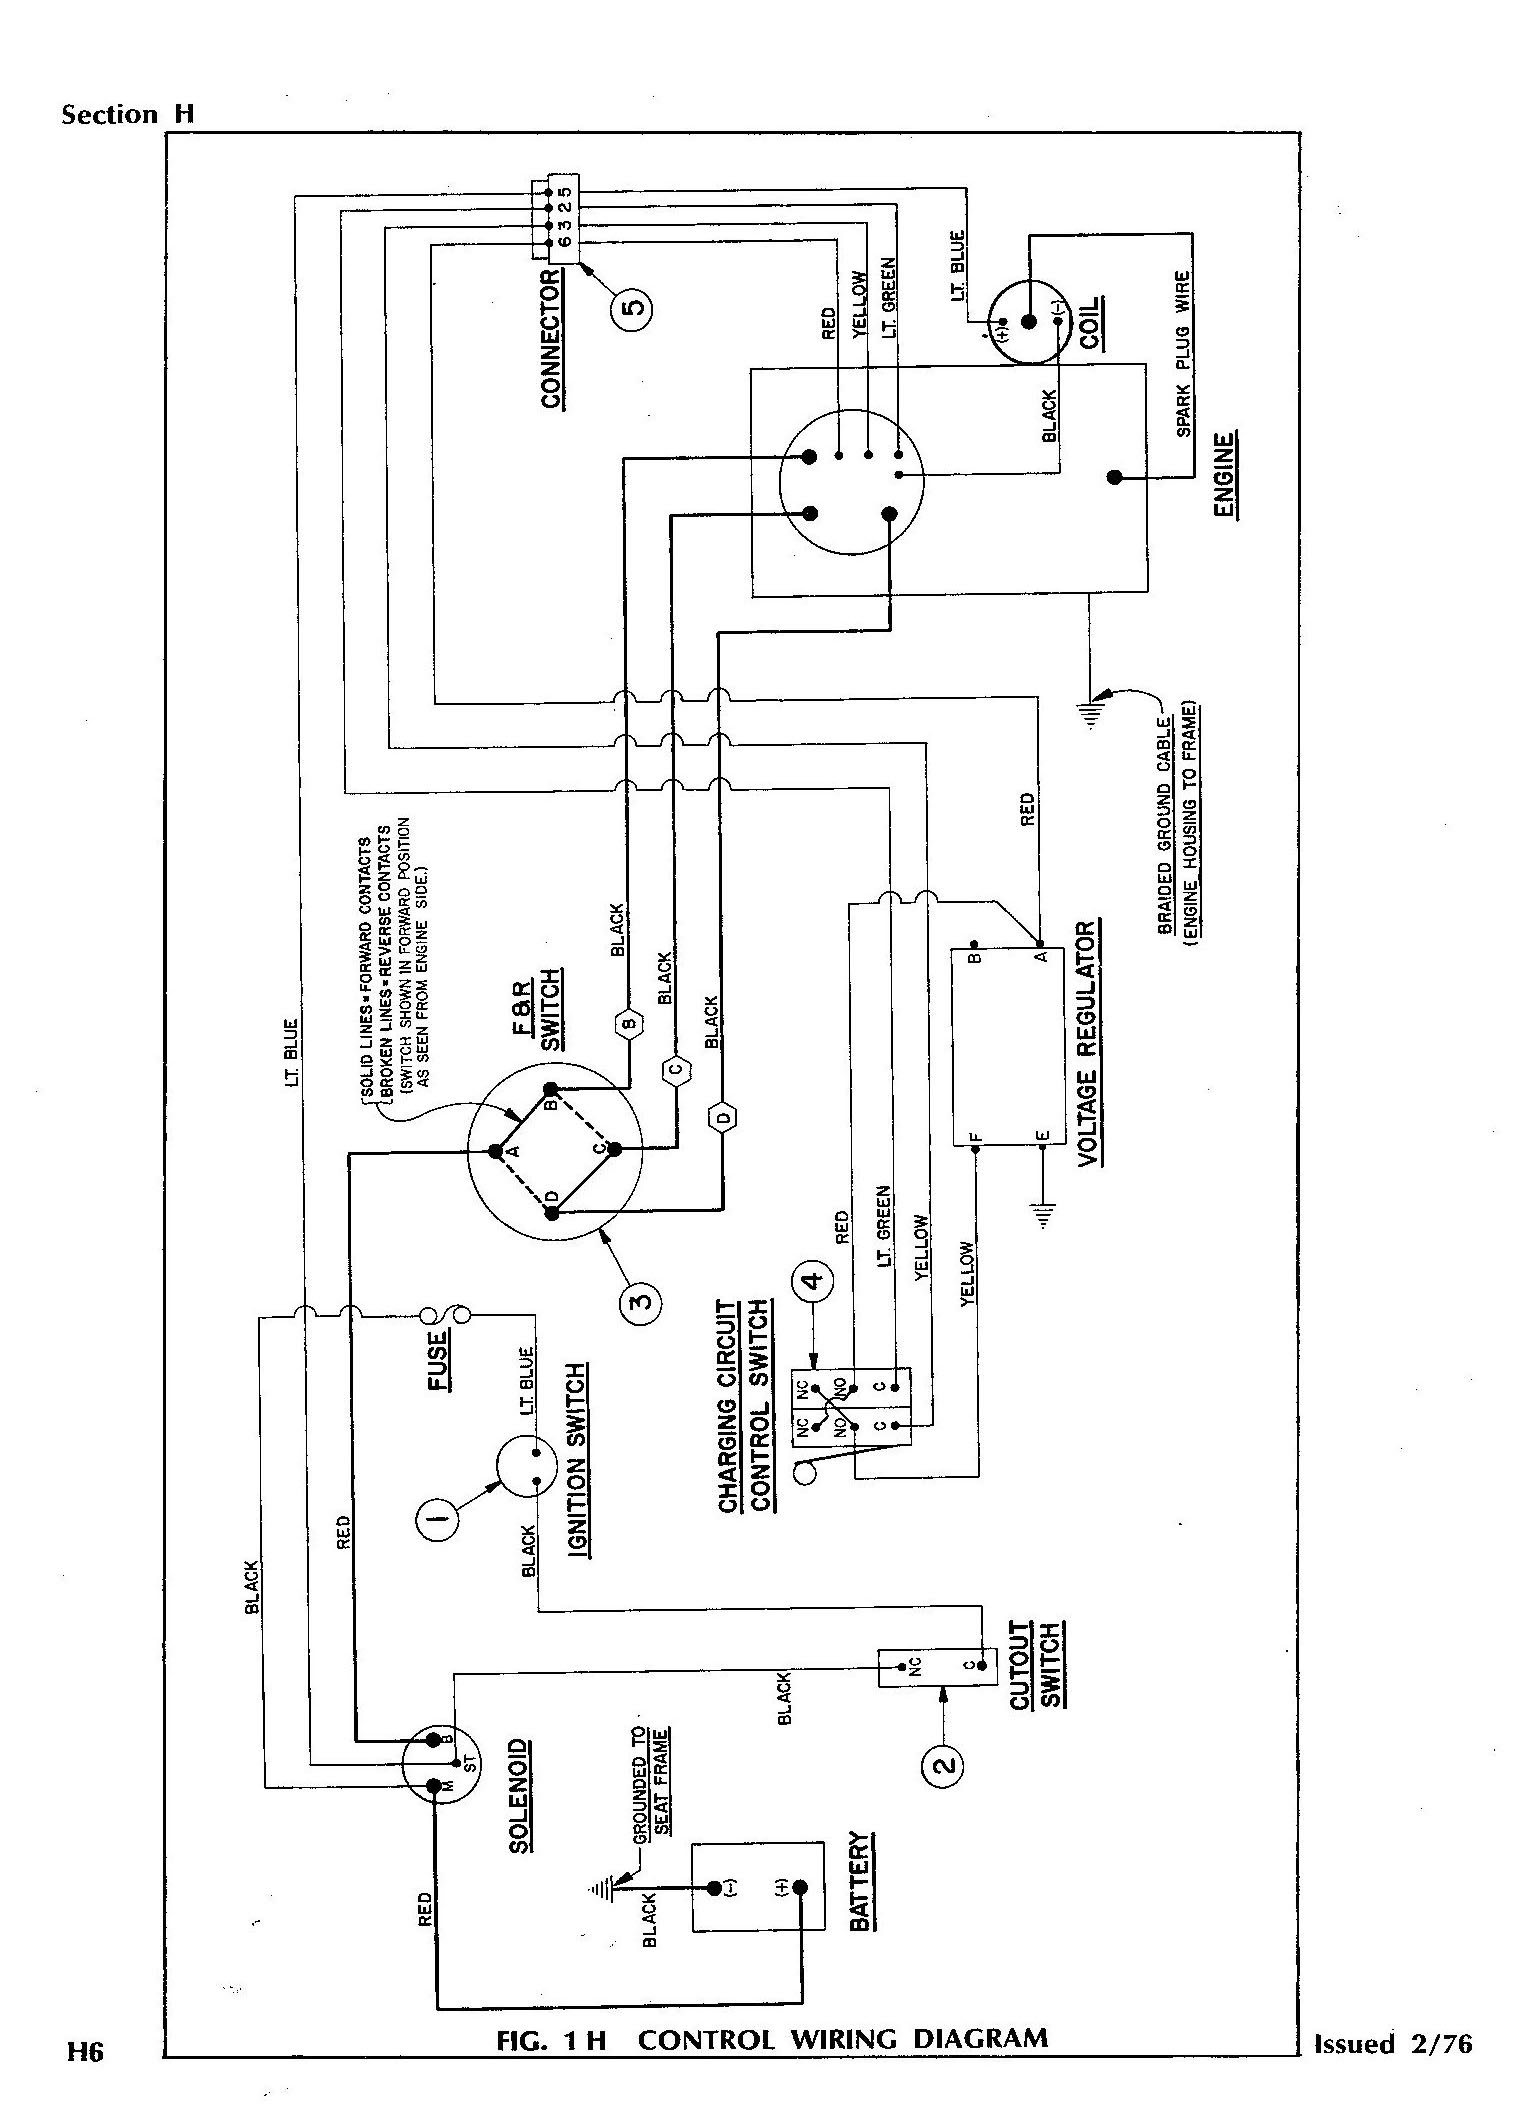 hight resolution of 1990 ezgo gas wiring diagram wiring diagram third level 1989 ezgo marathon wiring diagram 1990 ezgo gas wiring diagram